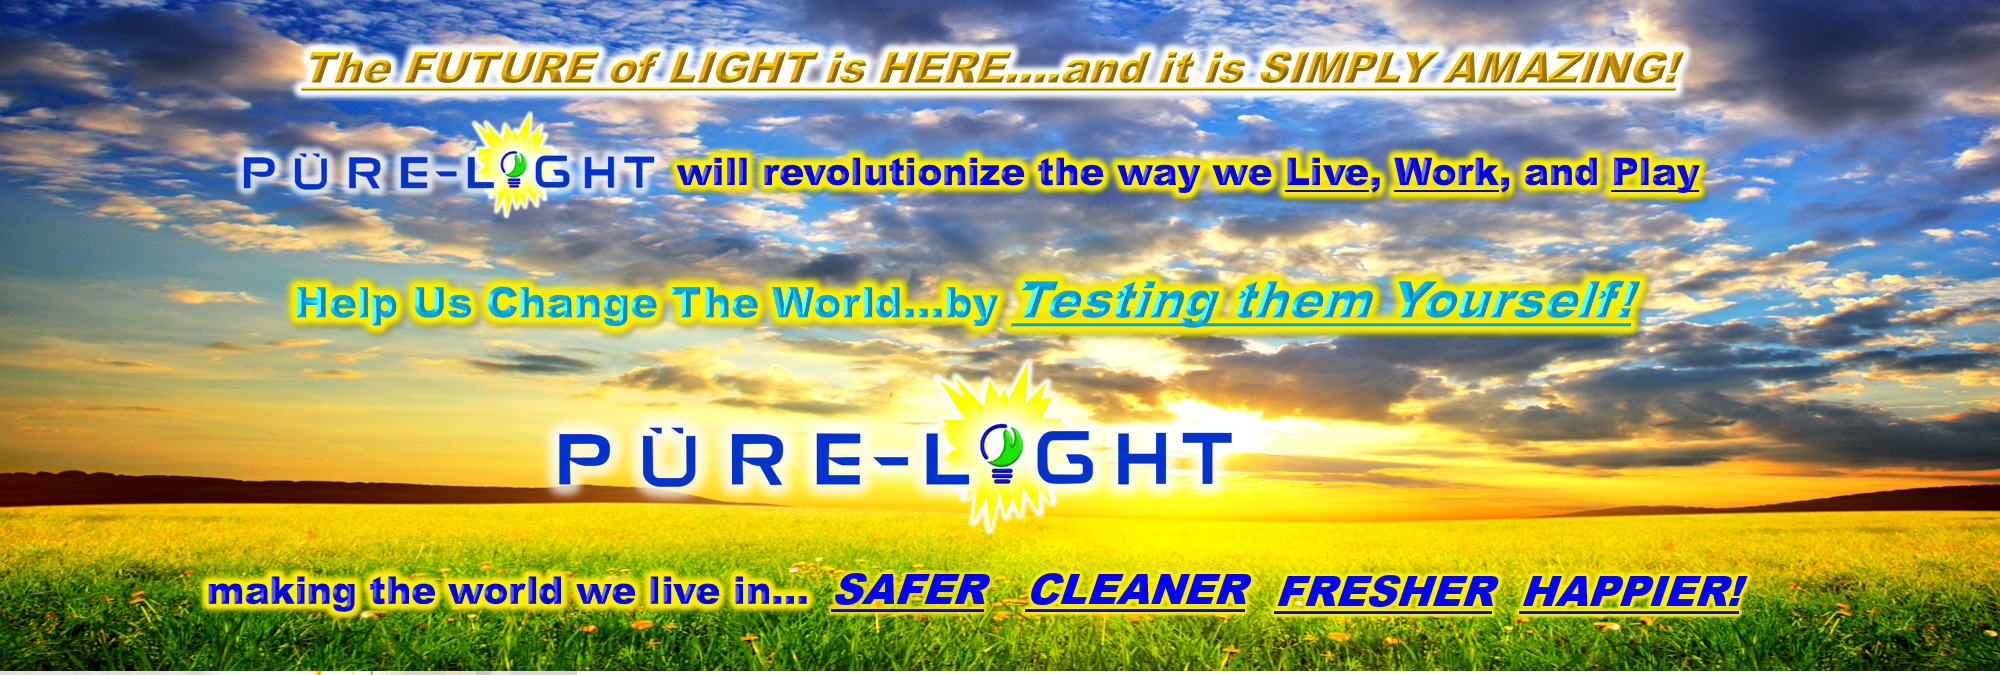 Revolutionize the Way We Live - New